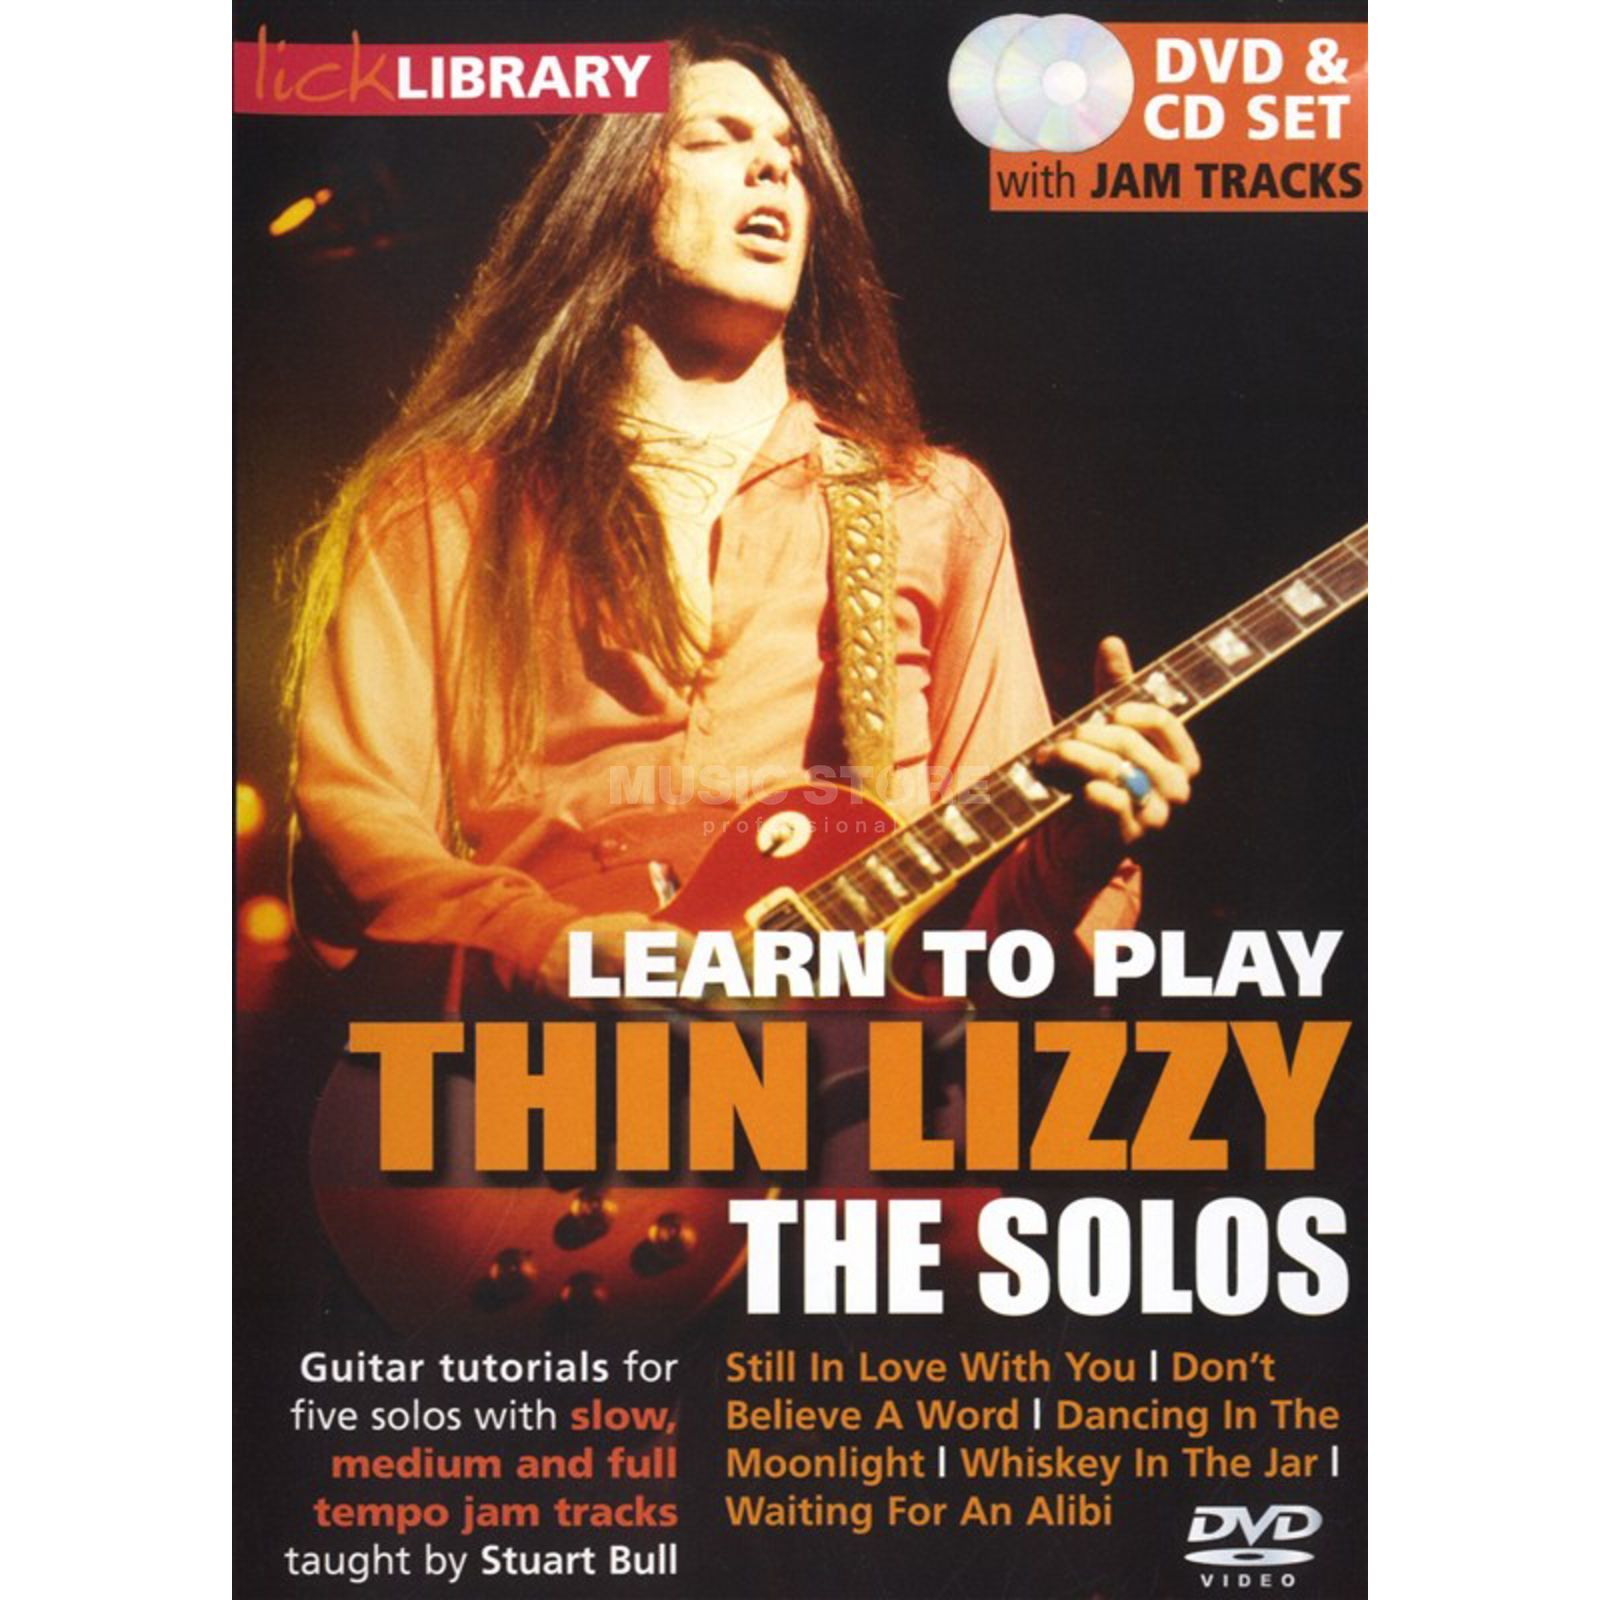 Roadrock International Lick Library: Learn To Play Thin Lizzy - The Solos DVD Produktbild